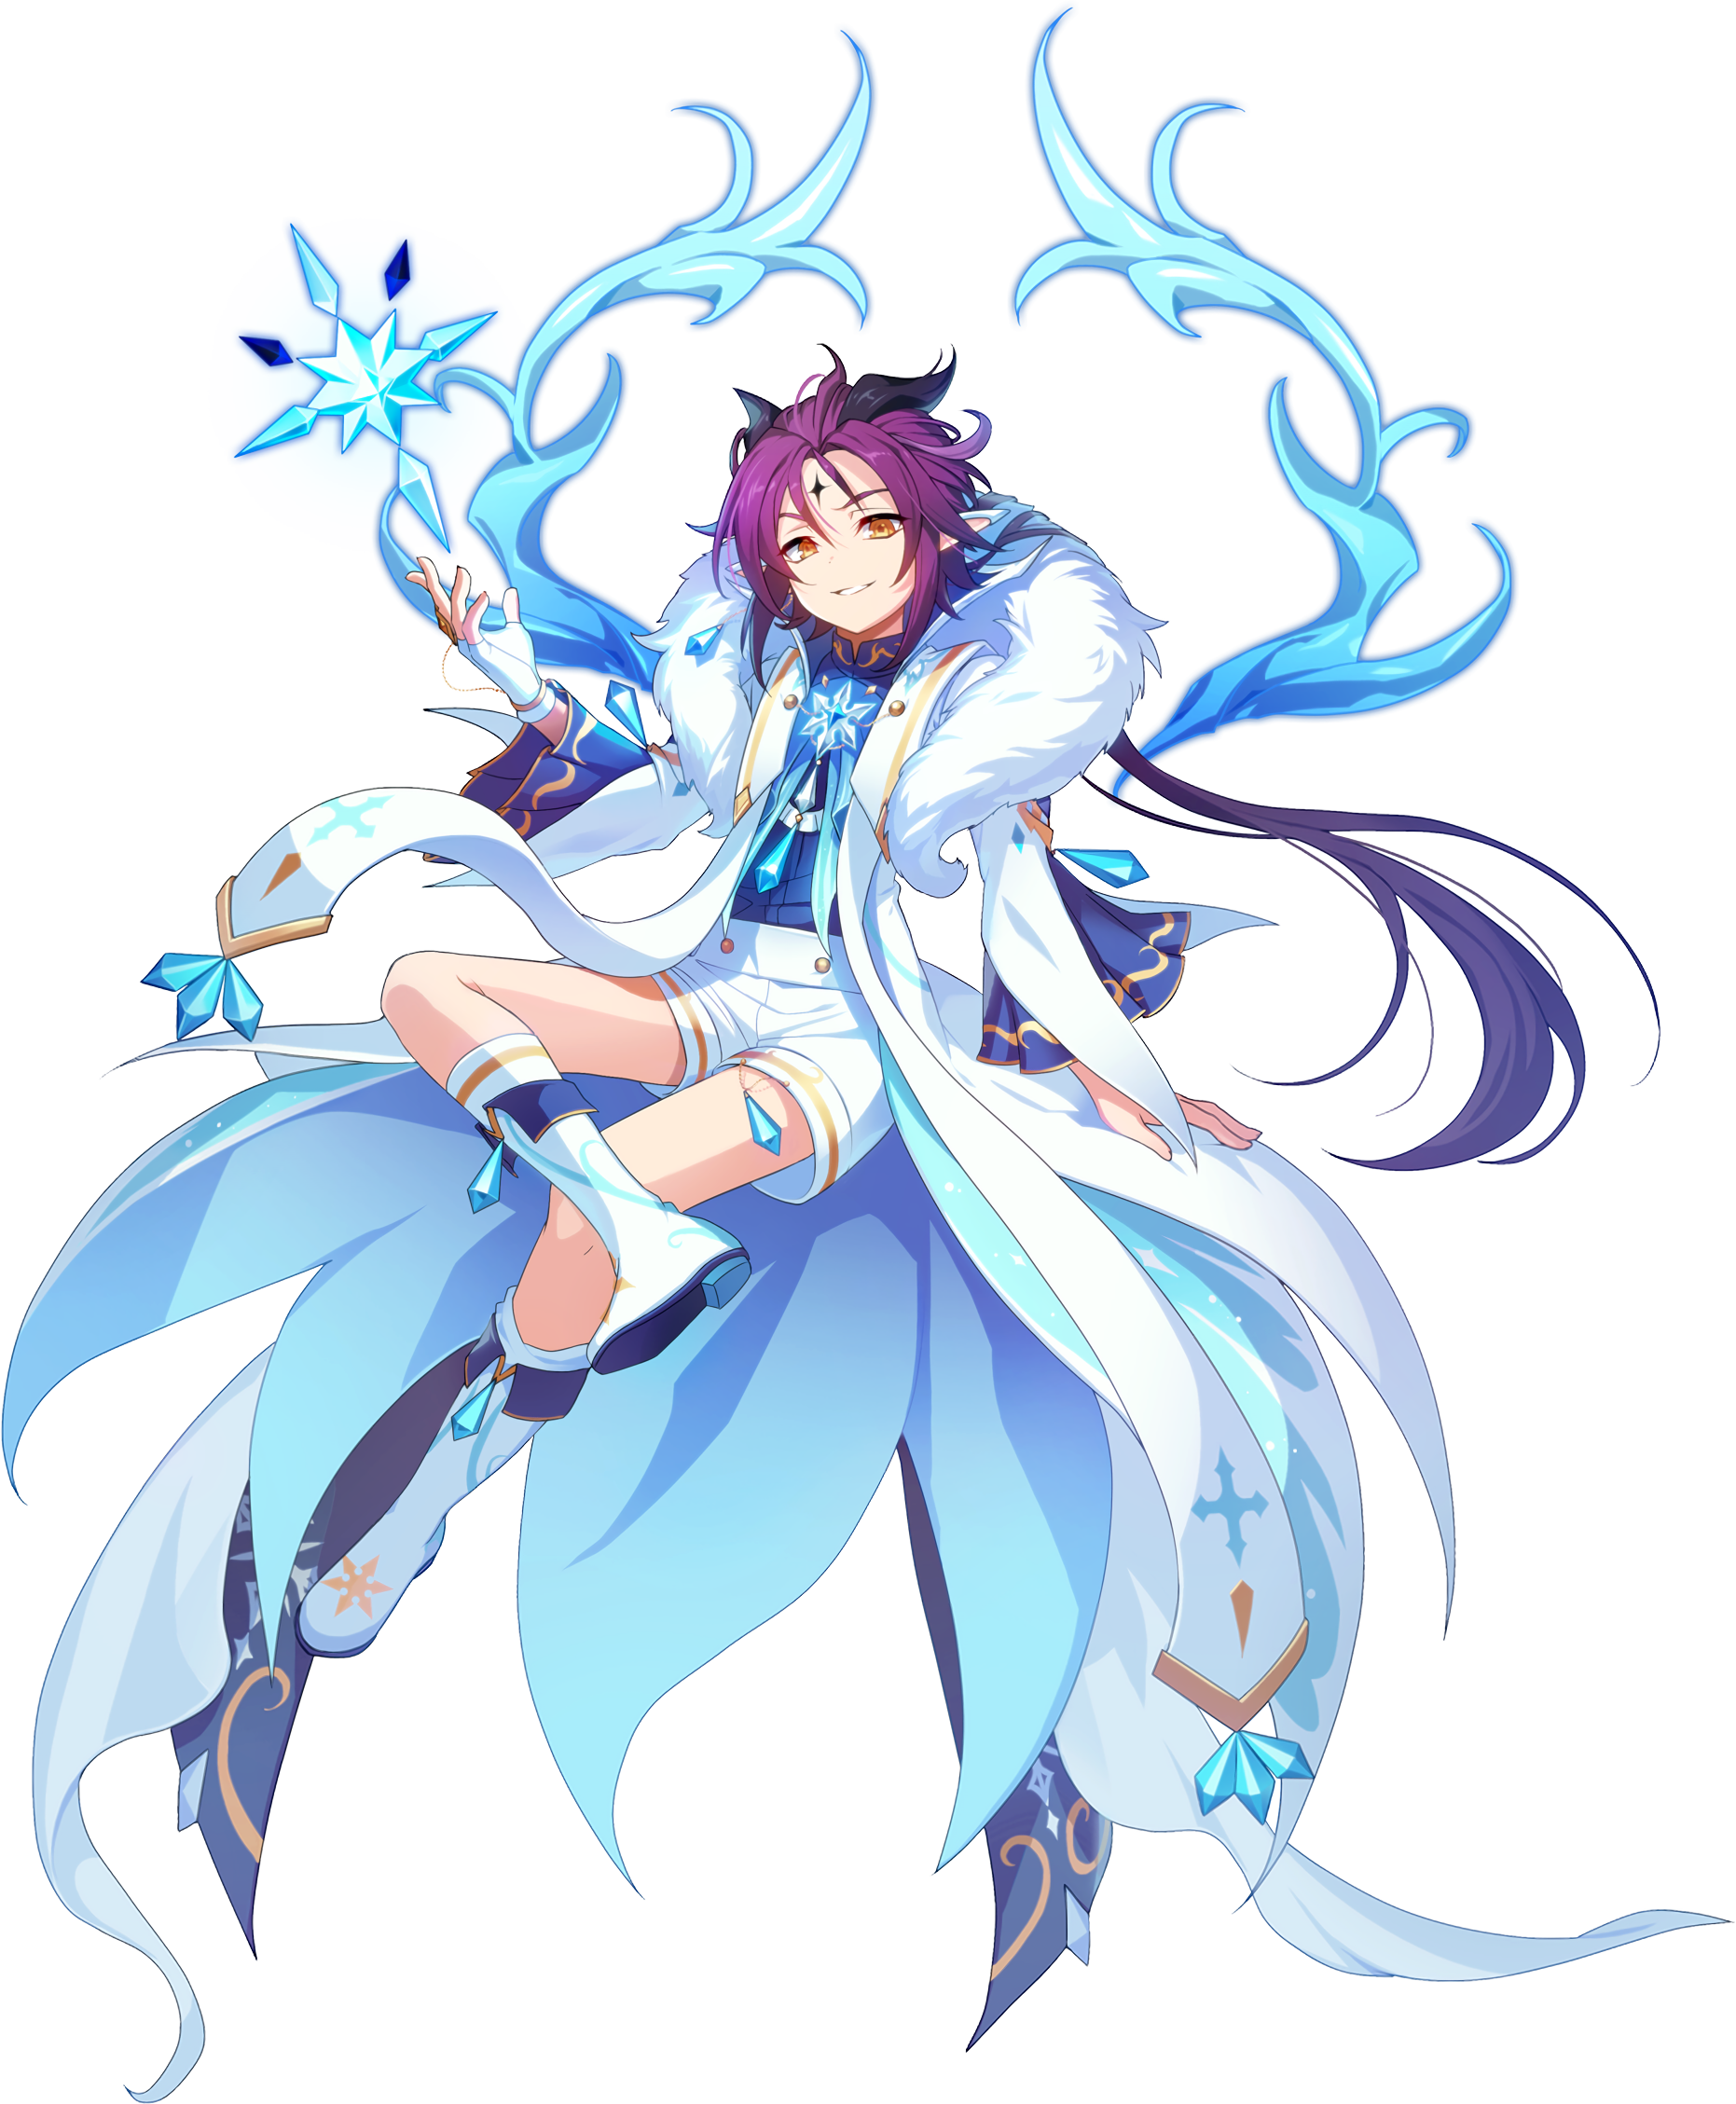 Veigas Grand Chase Dimensional Chaser Grand Chase Wiki Fandom Powered By Wikia Character Art Character Design Anime Art